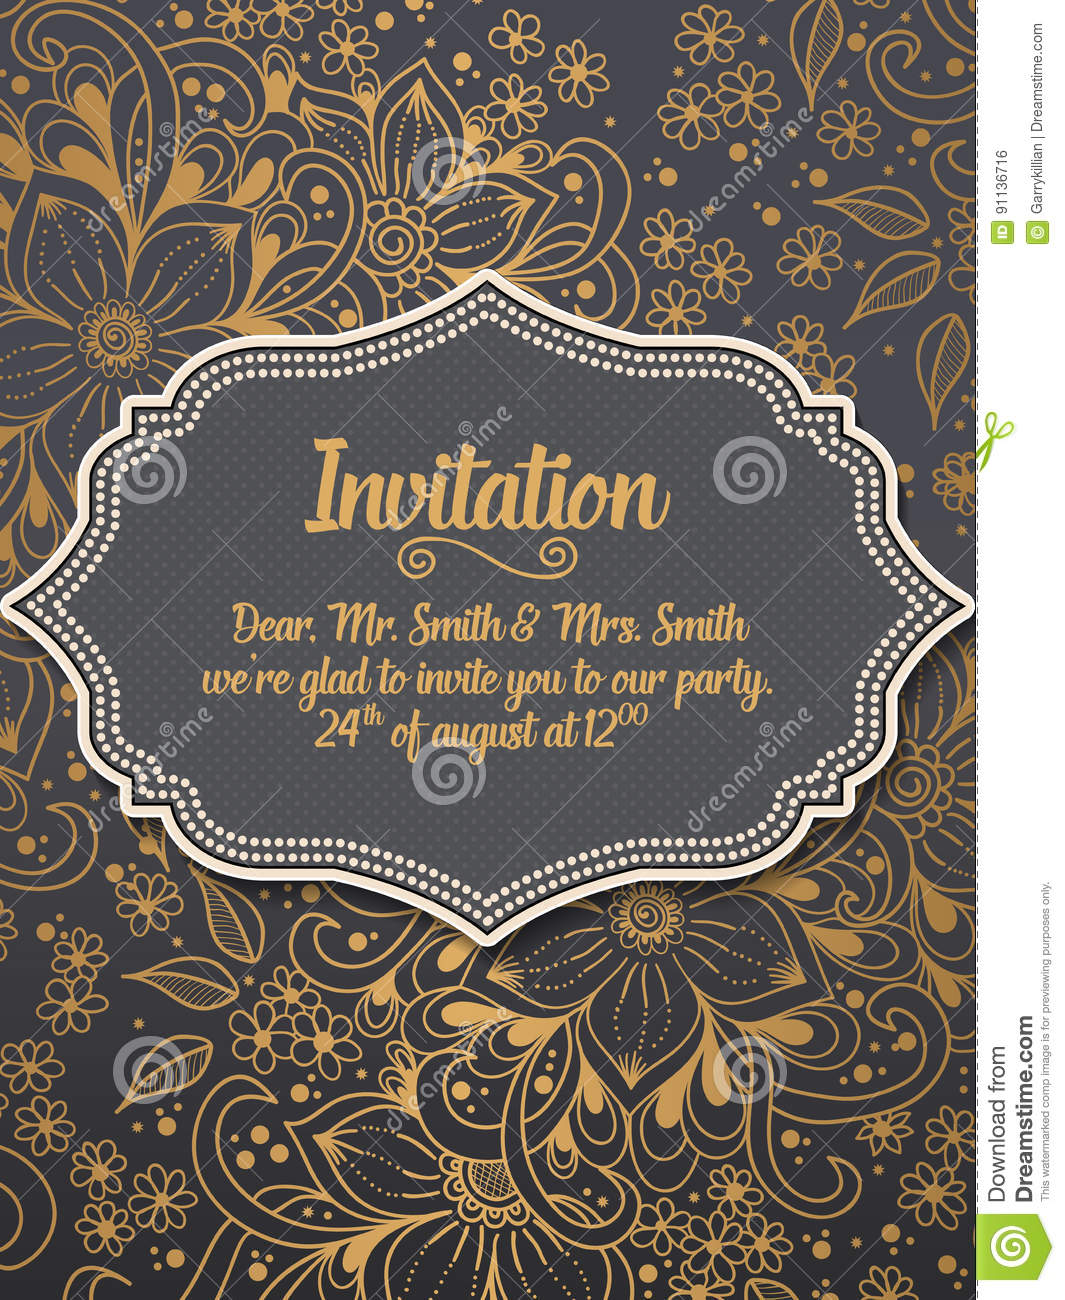 Wedding invitation and announcement card with ornament in Arabian style. Arabesque pattern.